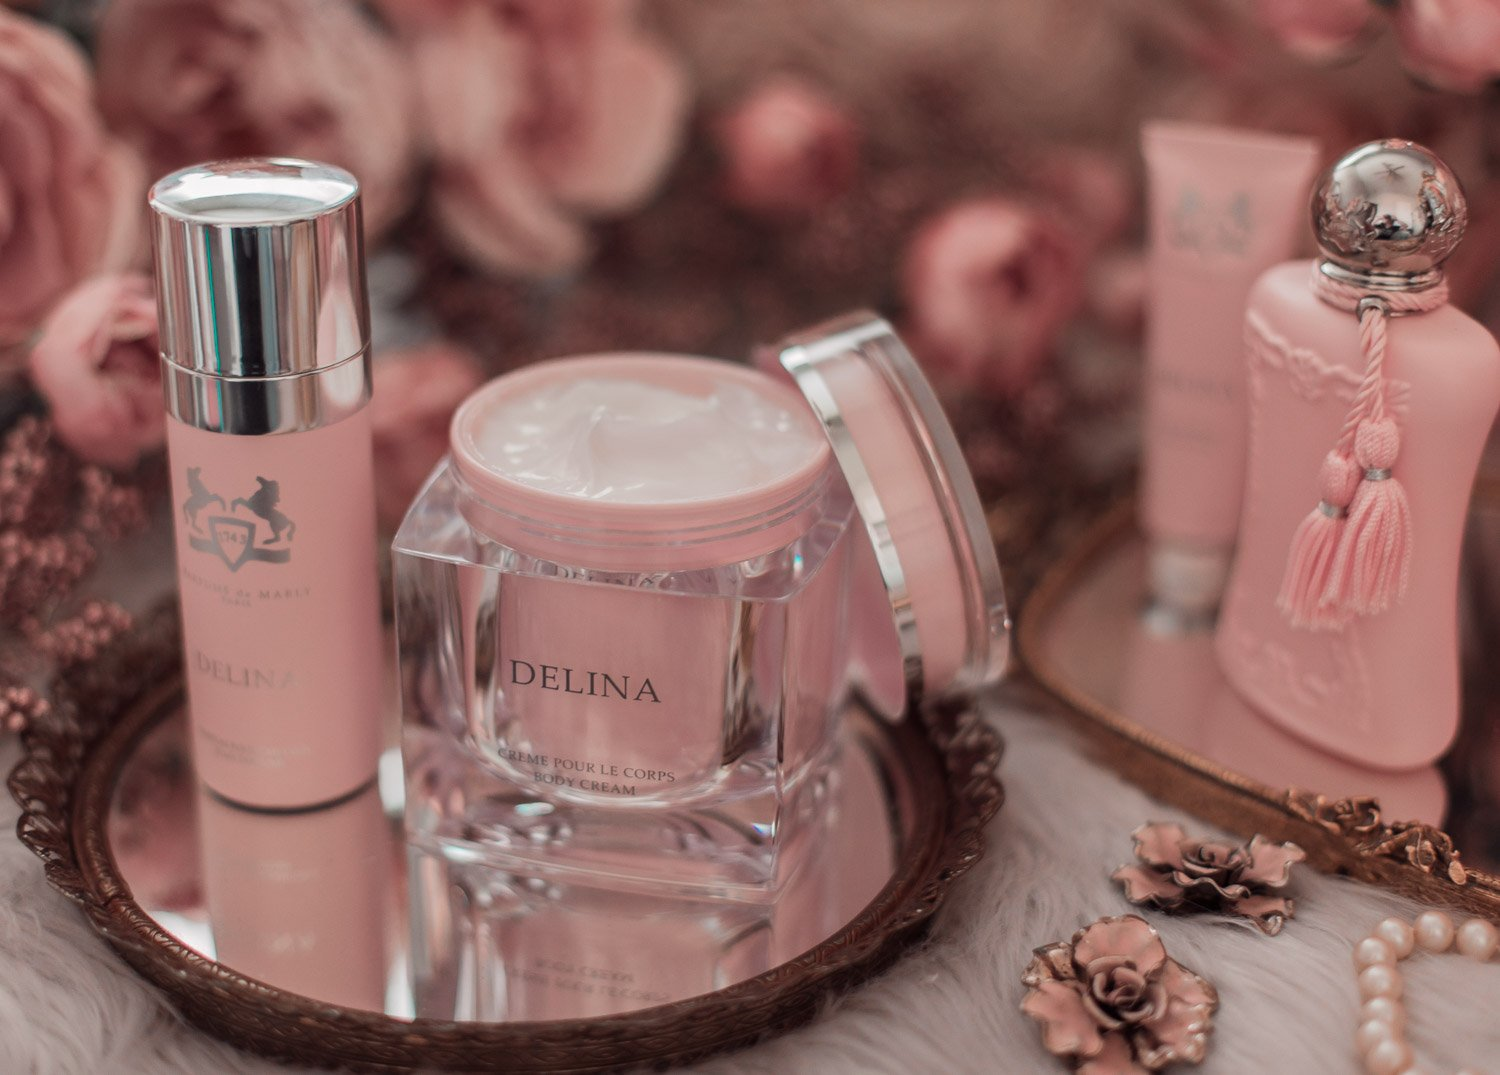 Feminine fashion blogger Elizabeth Hugen of Lizzie in Lace shares the entire Perfums de Marly Delina Collection including the Delina body cream